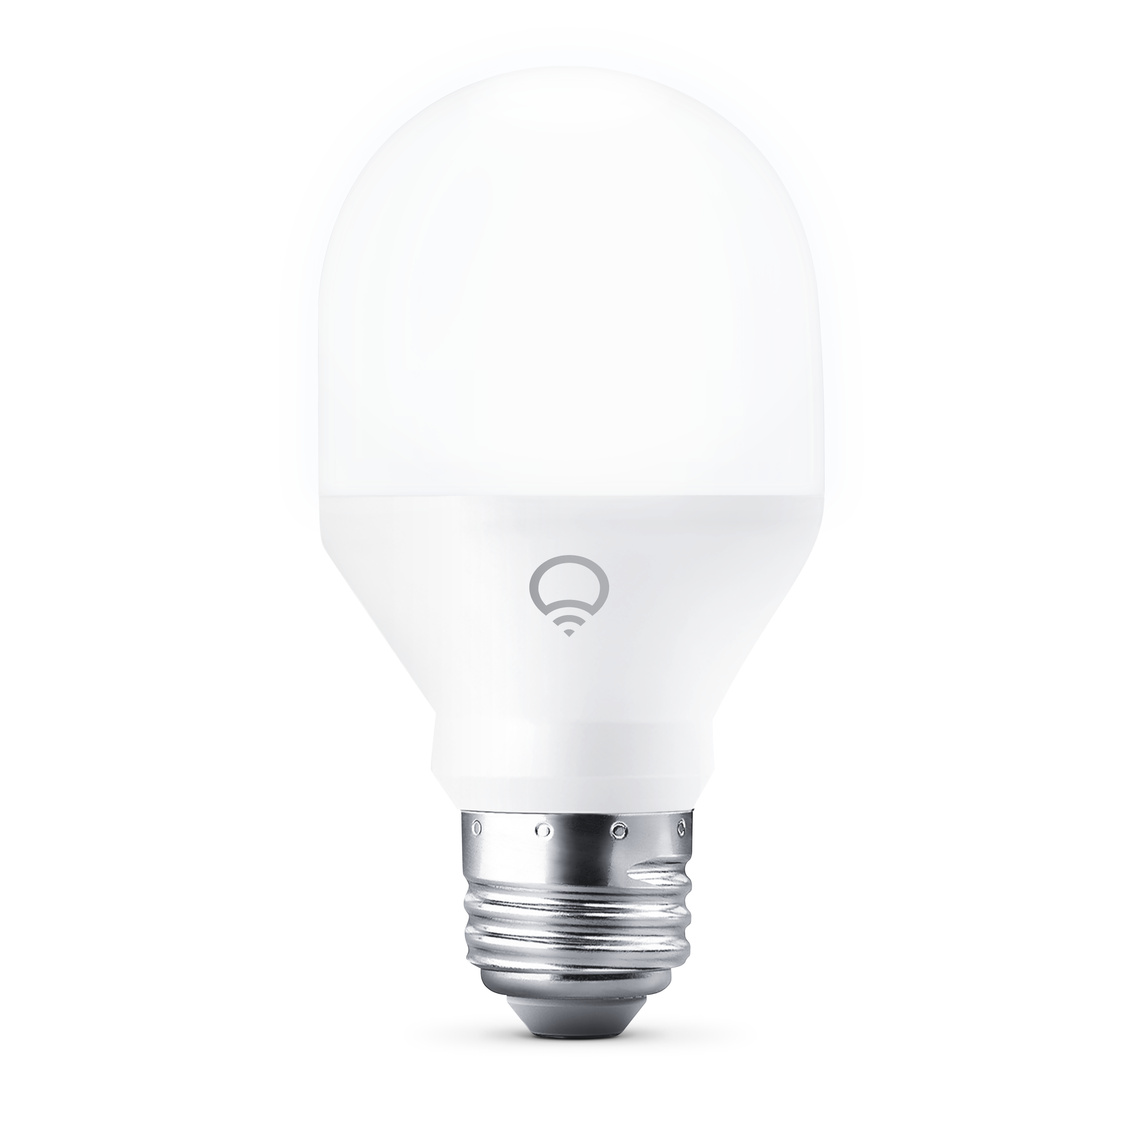 homekit kompatible lampen